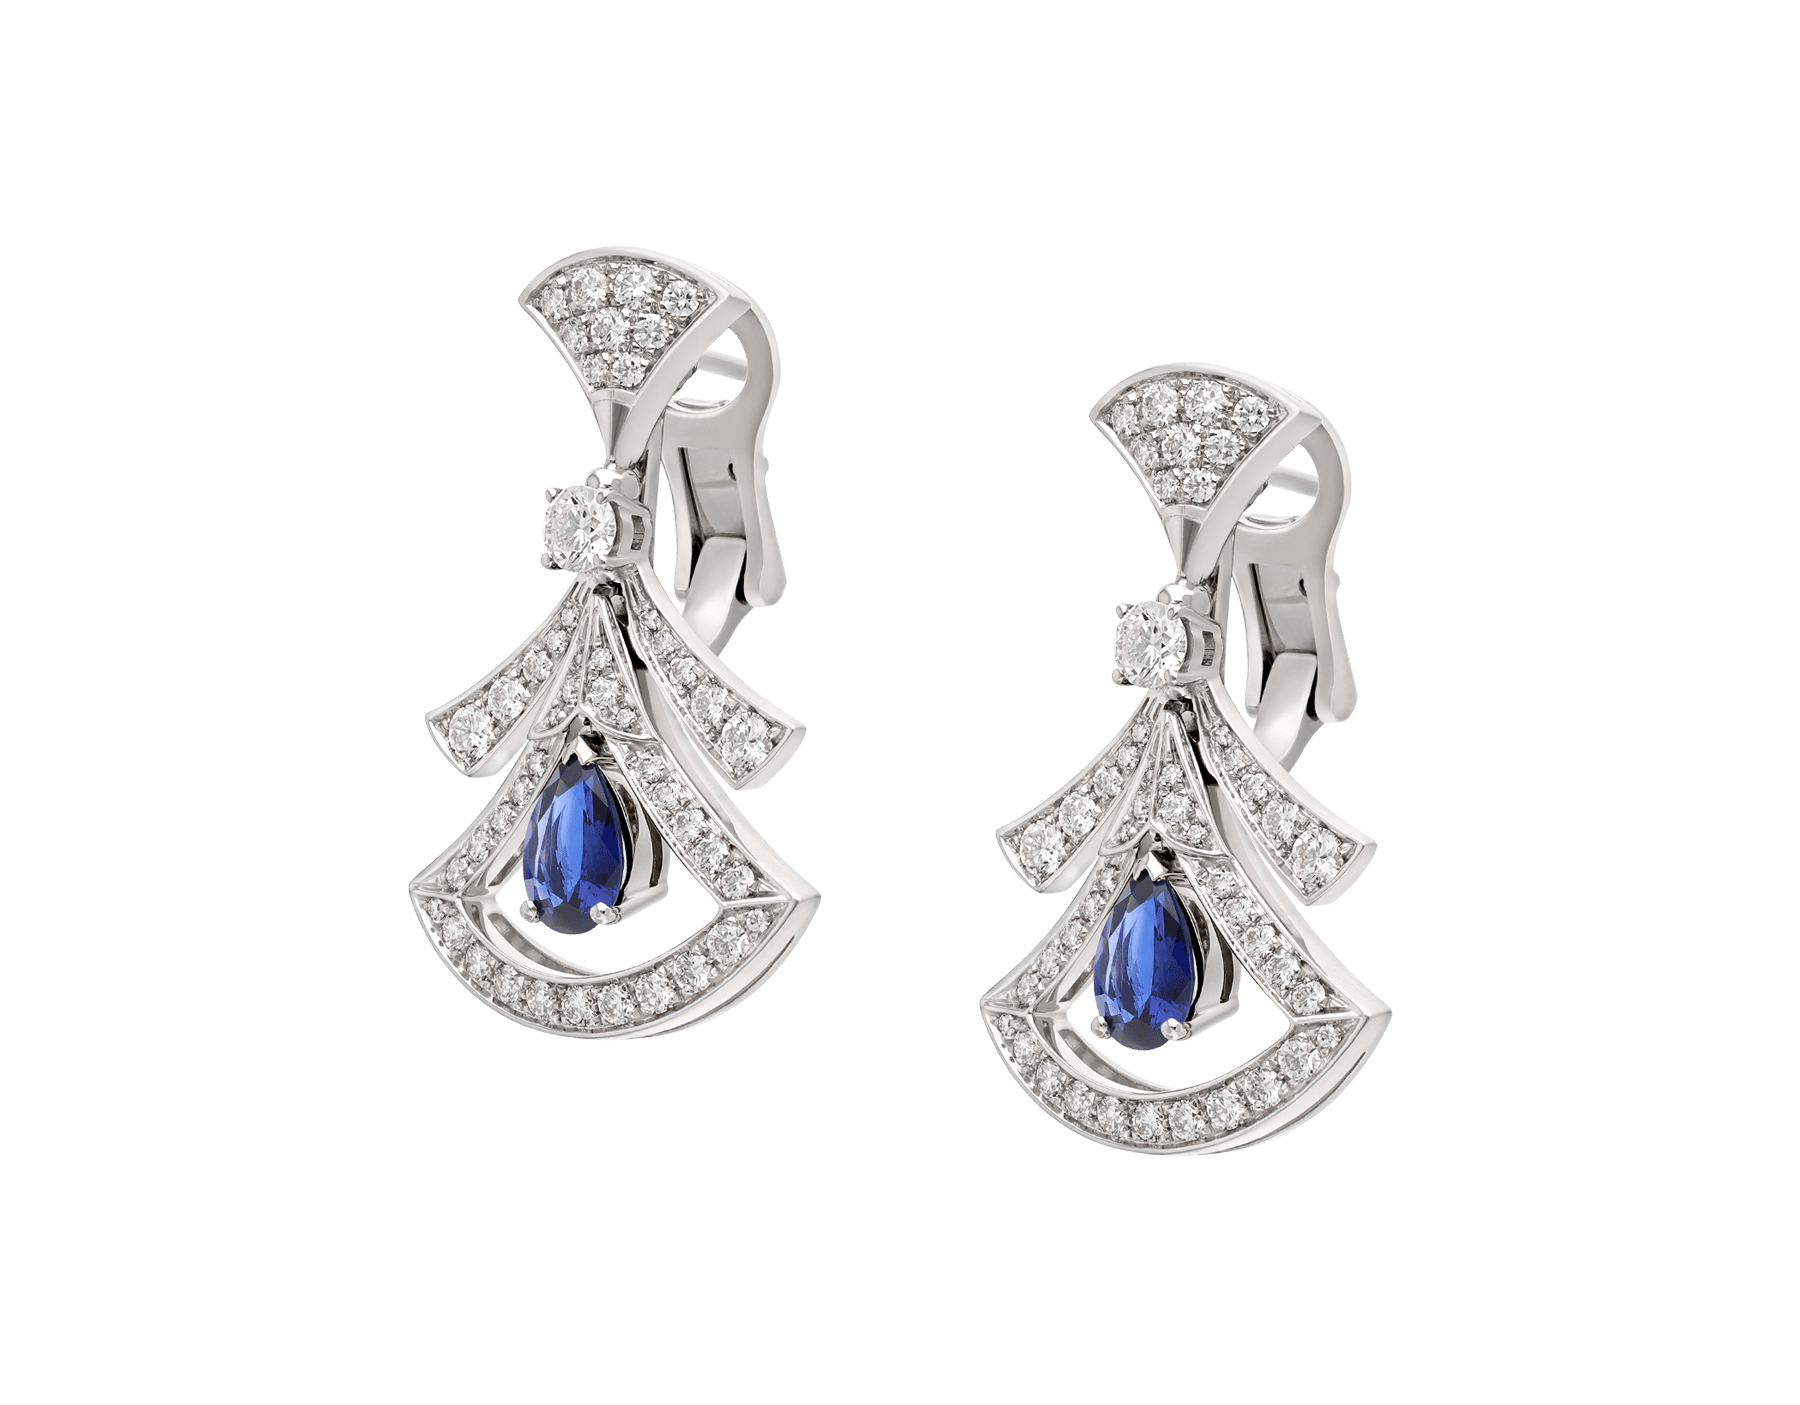 DIVAS' DREAM 18 kt white gold openwork earrings, set with pear-shaped sapphires, round brilliant-cut and pavé diamonds. 357324 image 2